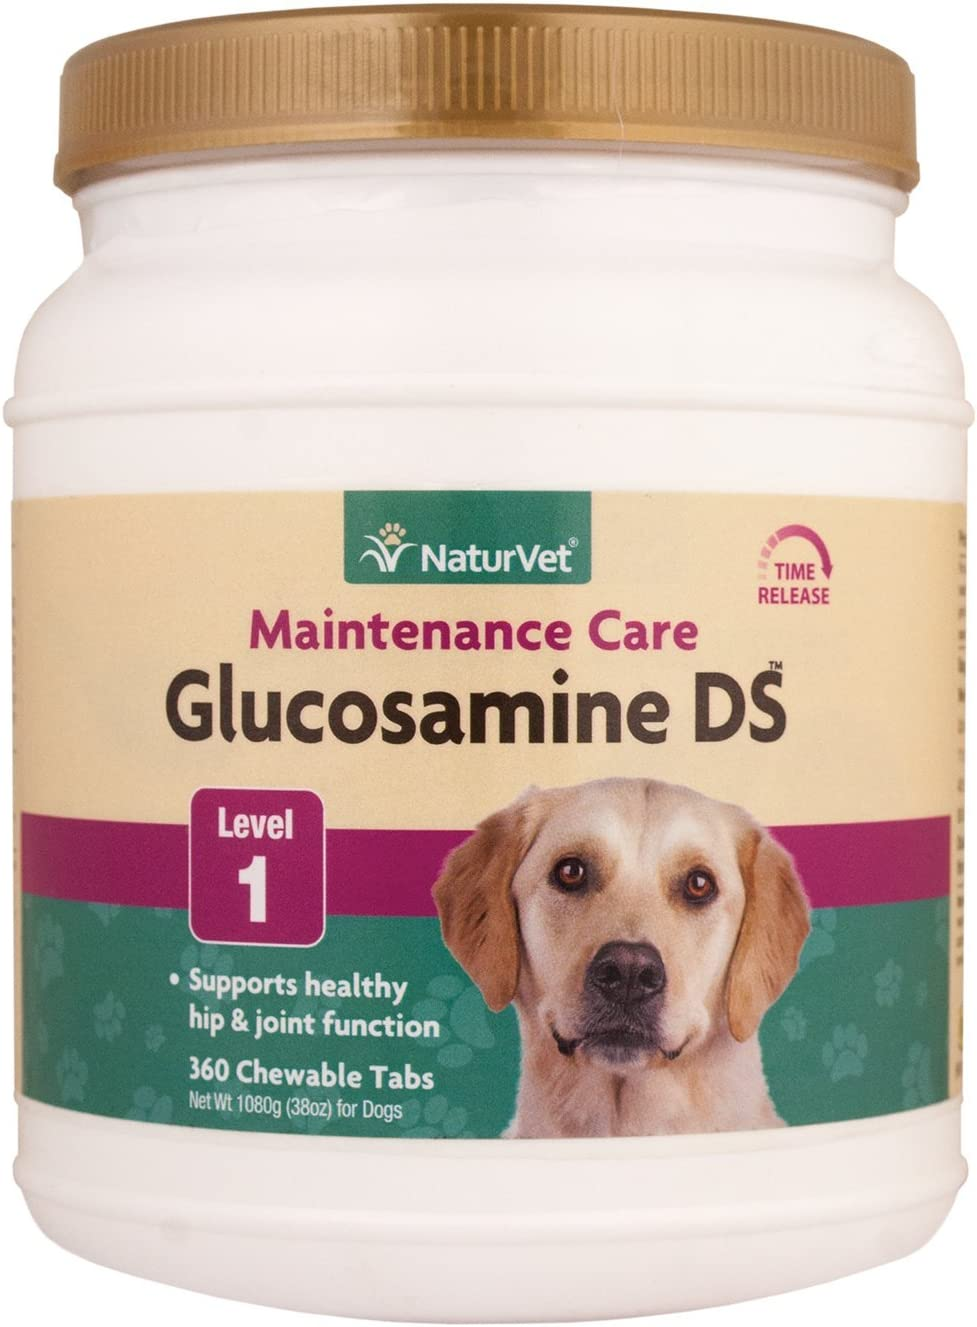 NaturVet 240 Count Glucosamine- DS with Glucosamine and Chondroitin Tablets for Dogs (360 Count)